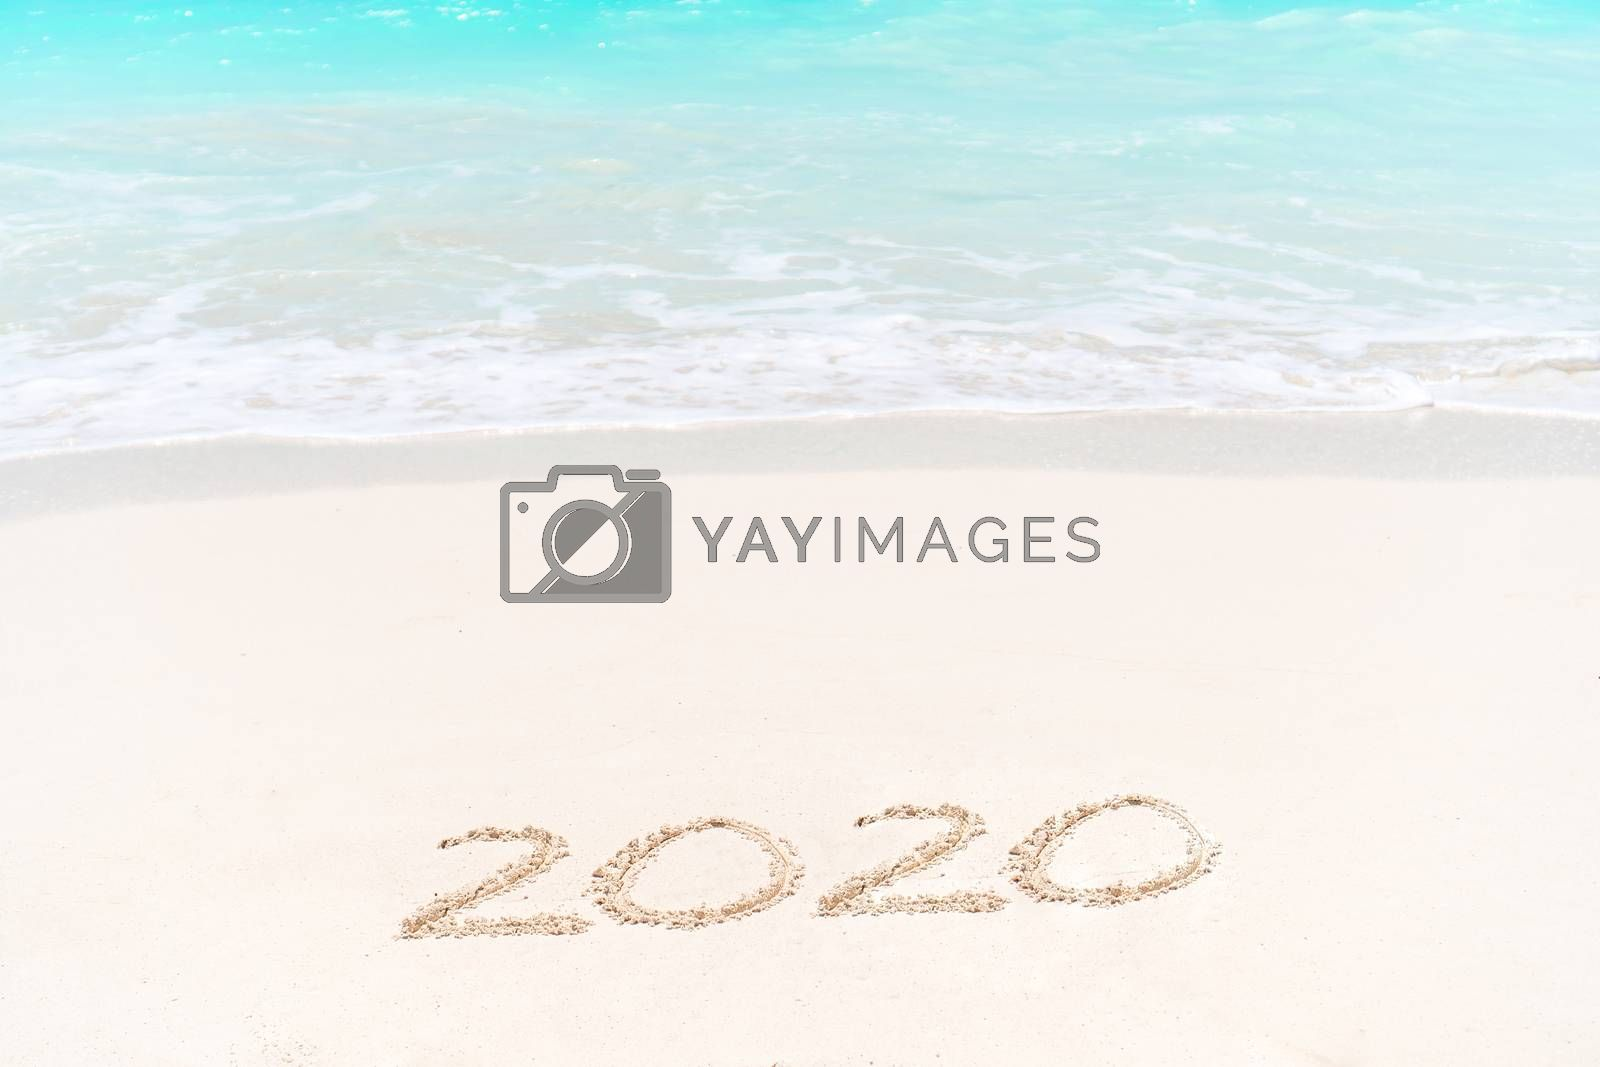 2020 handwritten on sandy beach with soft ocean wave on background by travnikovstudio